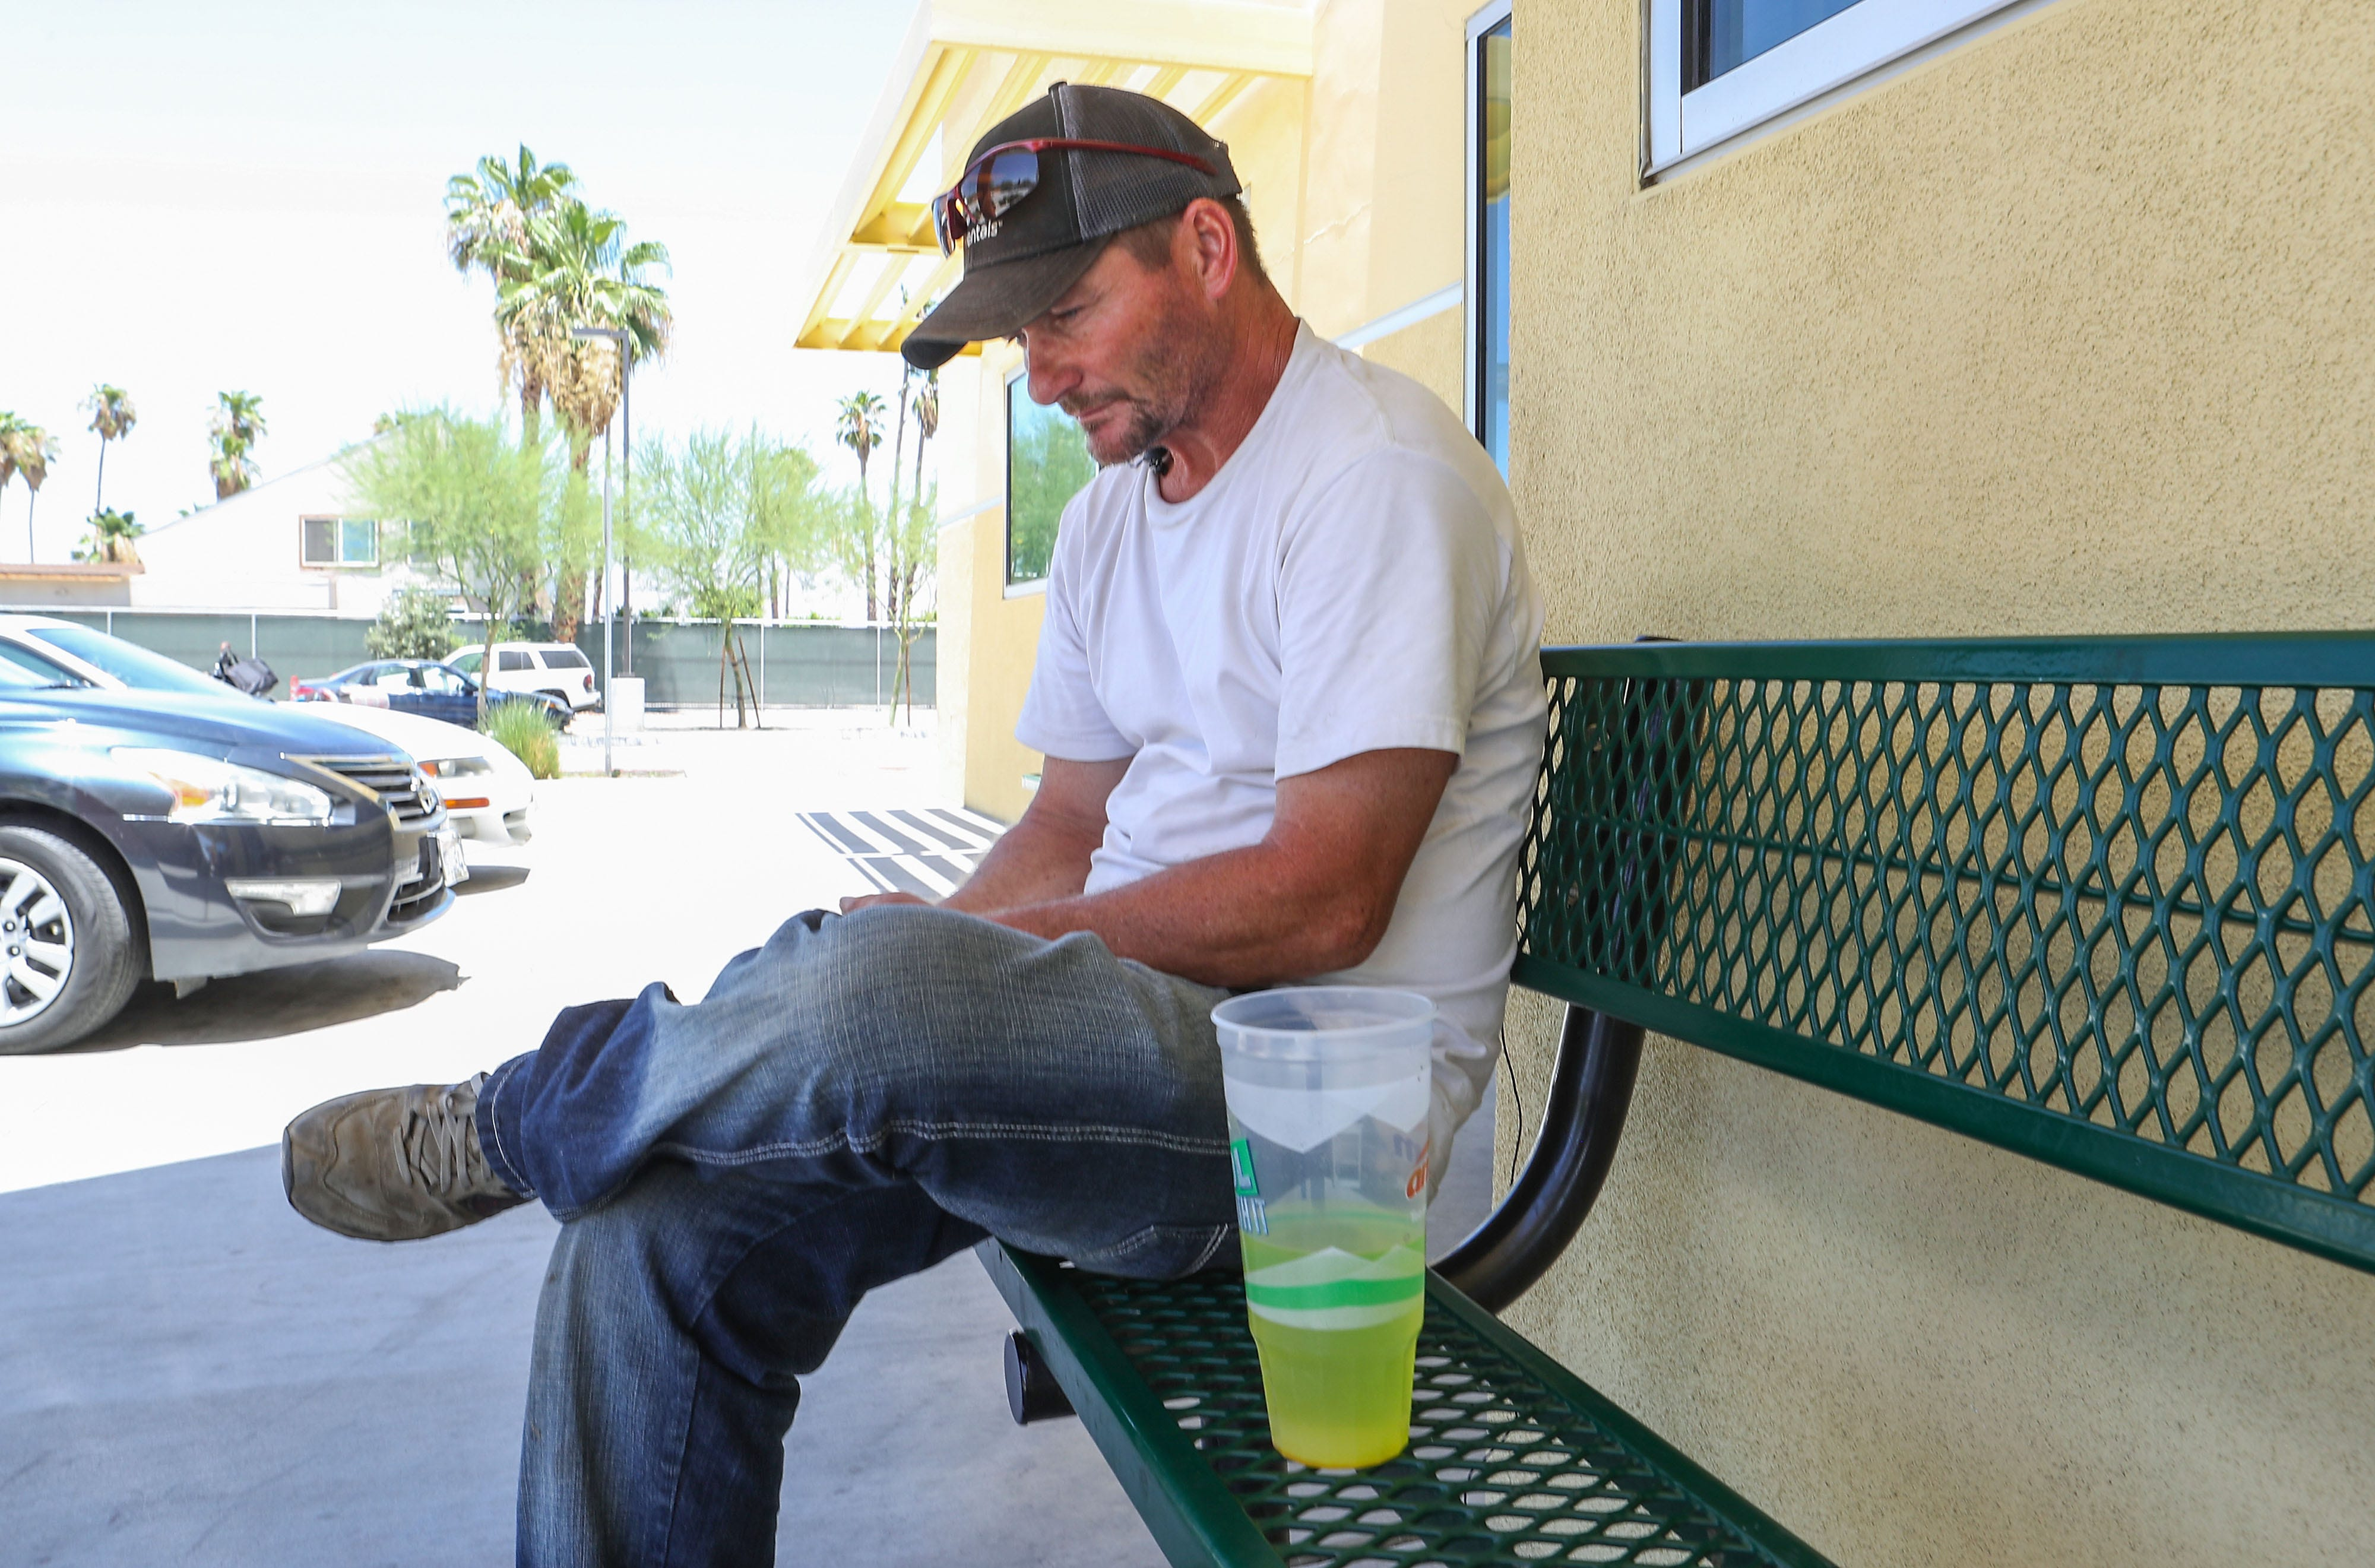 Robert Pruitte passes time at the Coachella Valley Rescue Mission on June 29, 2018, after being evicted from the Coachella encampment near Dillon Road. He stayed at the mission on and off during the summer as he worked through the housing process.